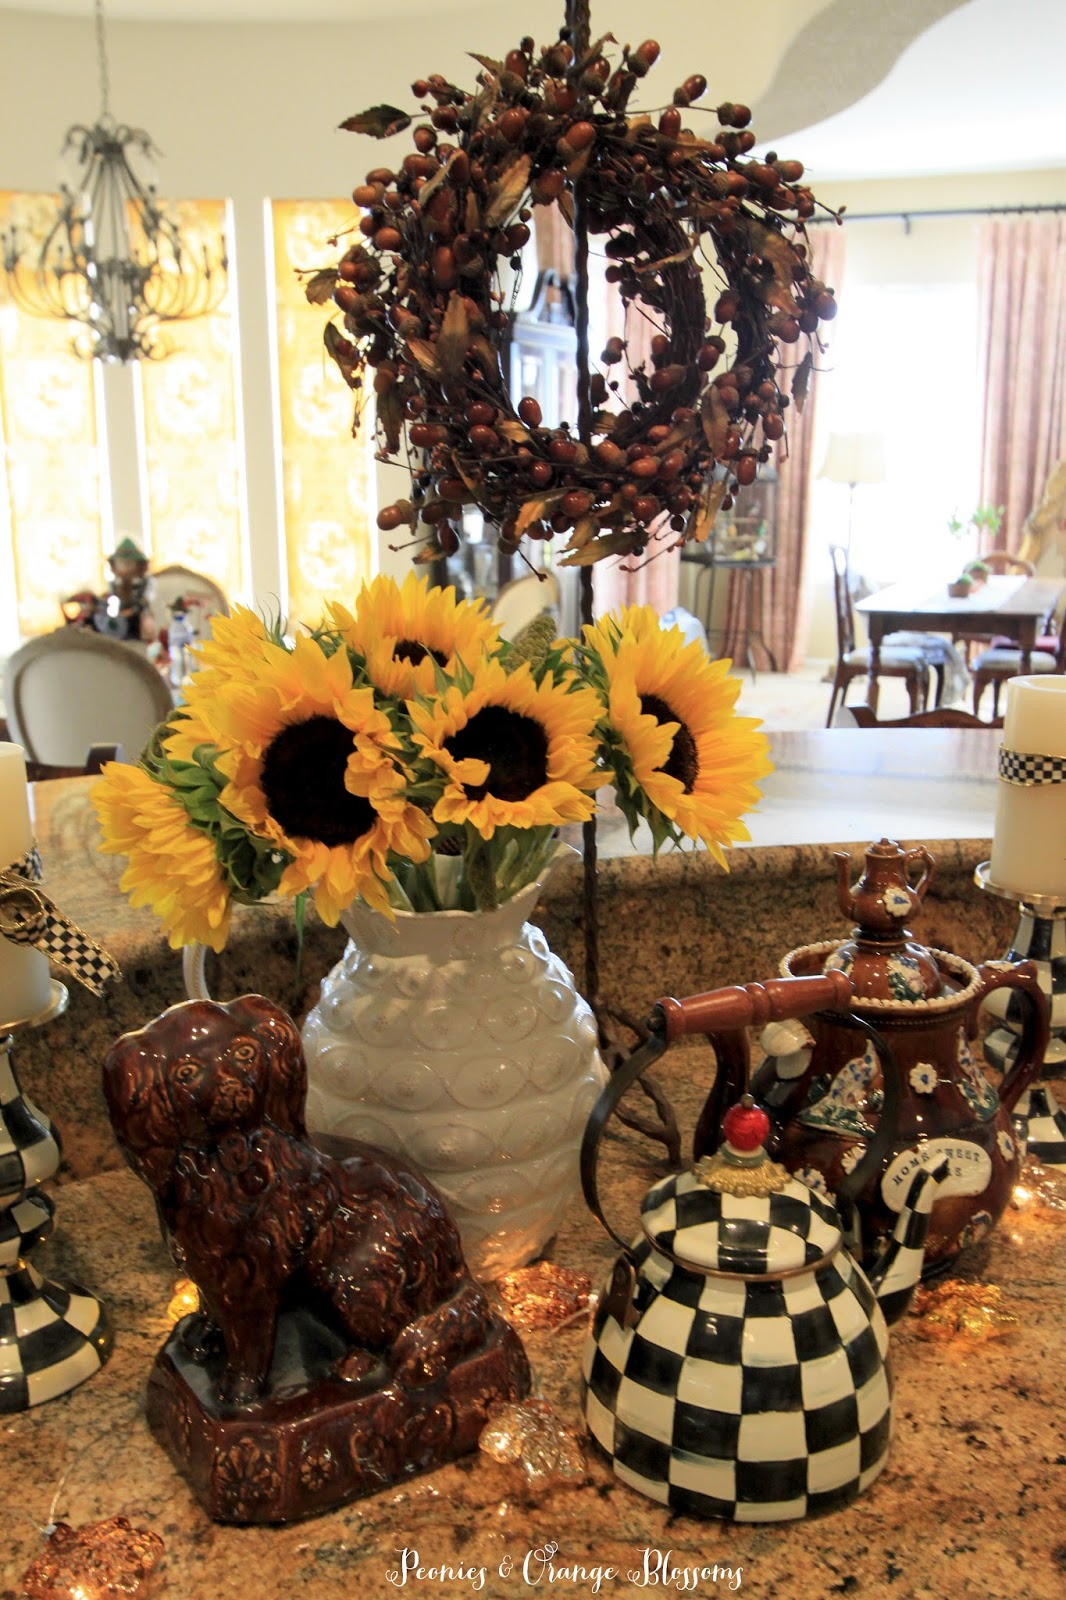 Peonies and orange blossoms early fall centerpiece decor for Mackenzie childs kitchen ideas